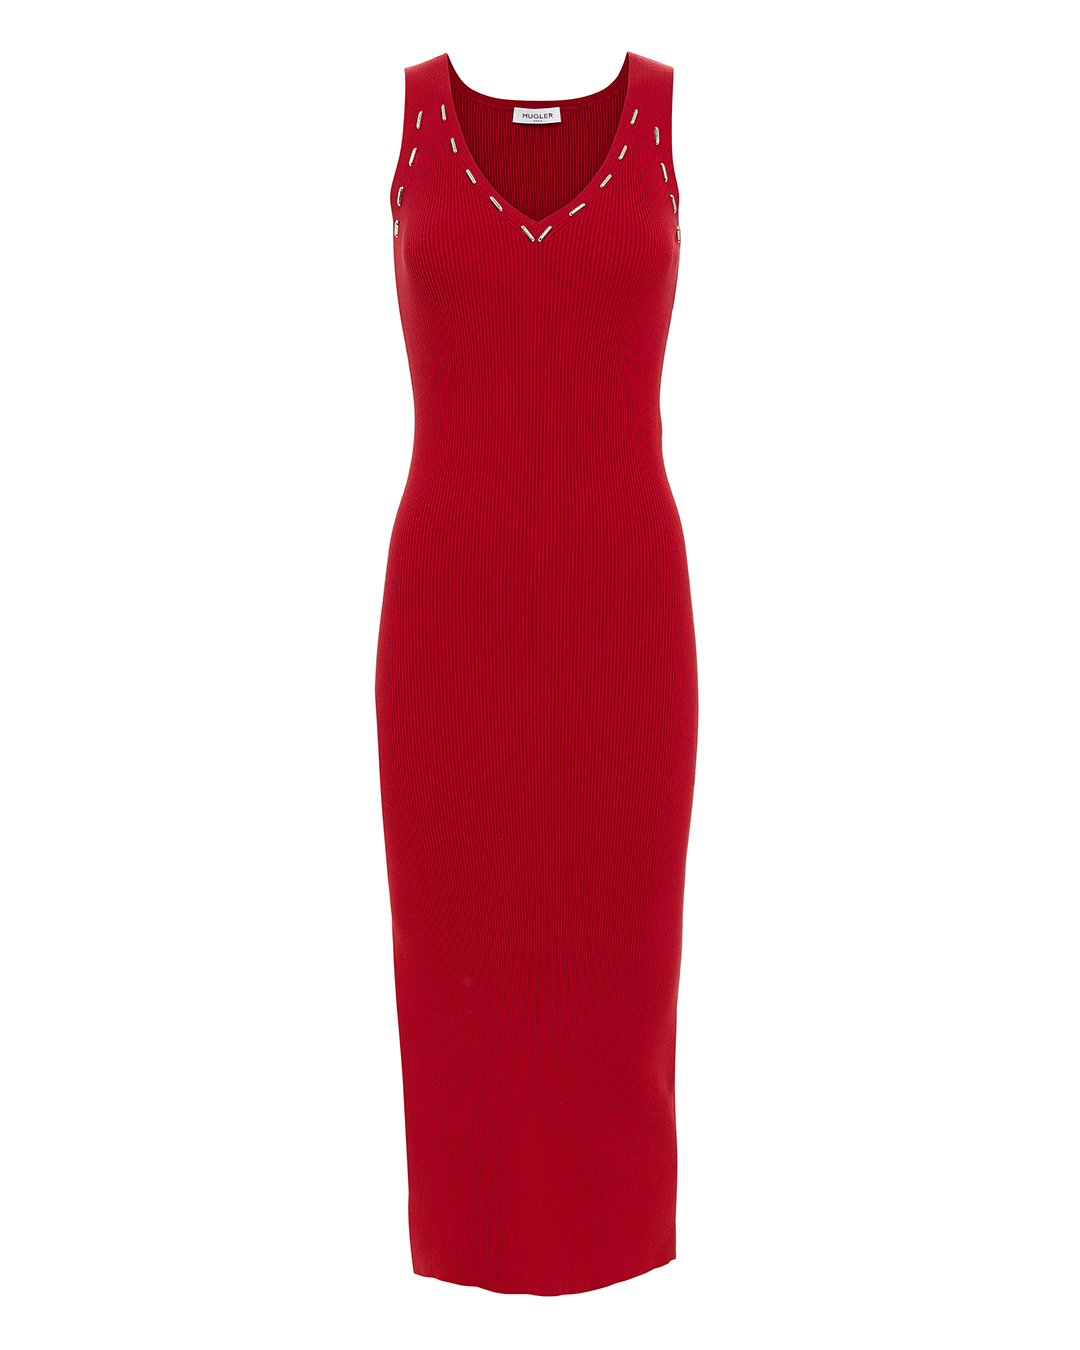 UGLER ETAL DETAIL RED KNIT IDI DRESS RED